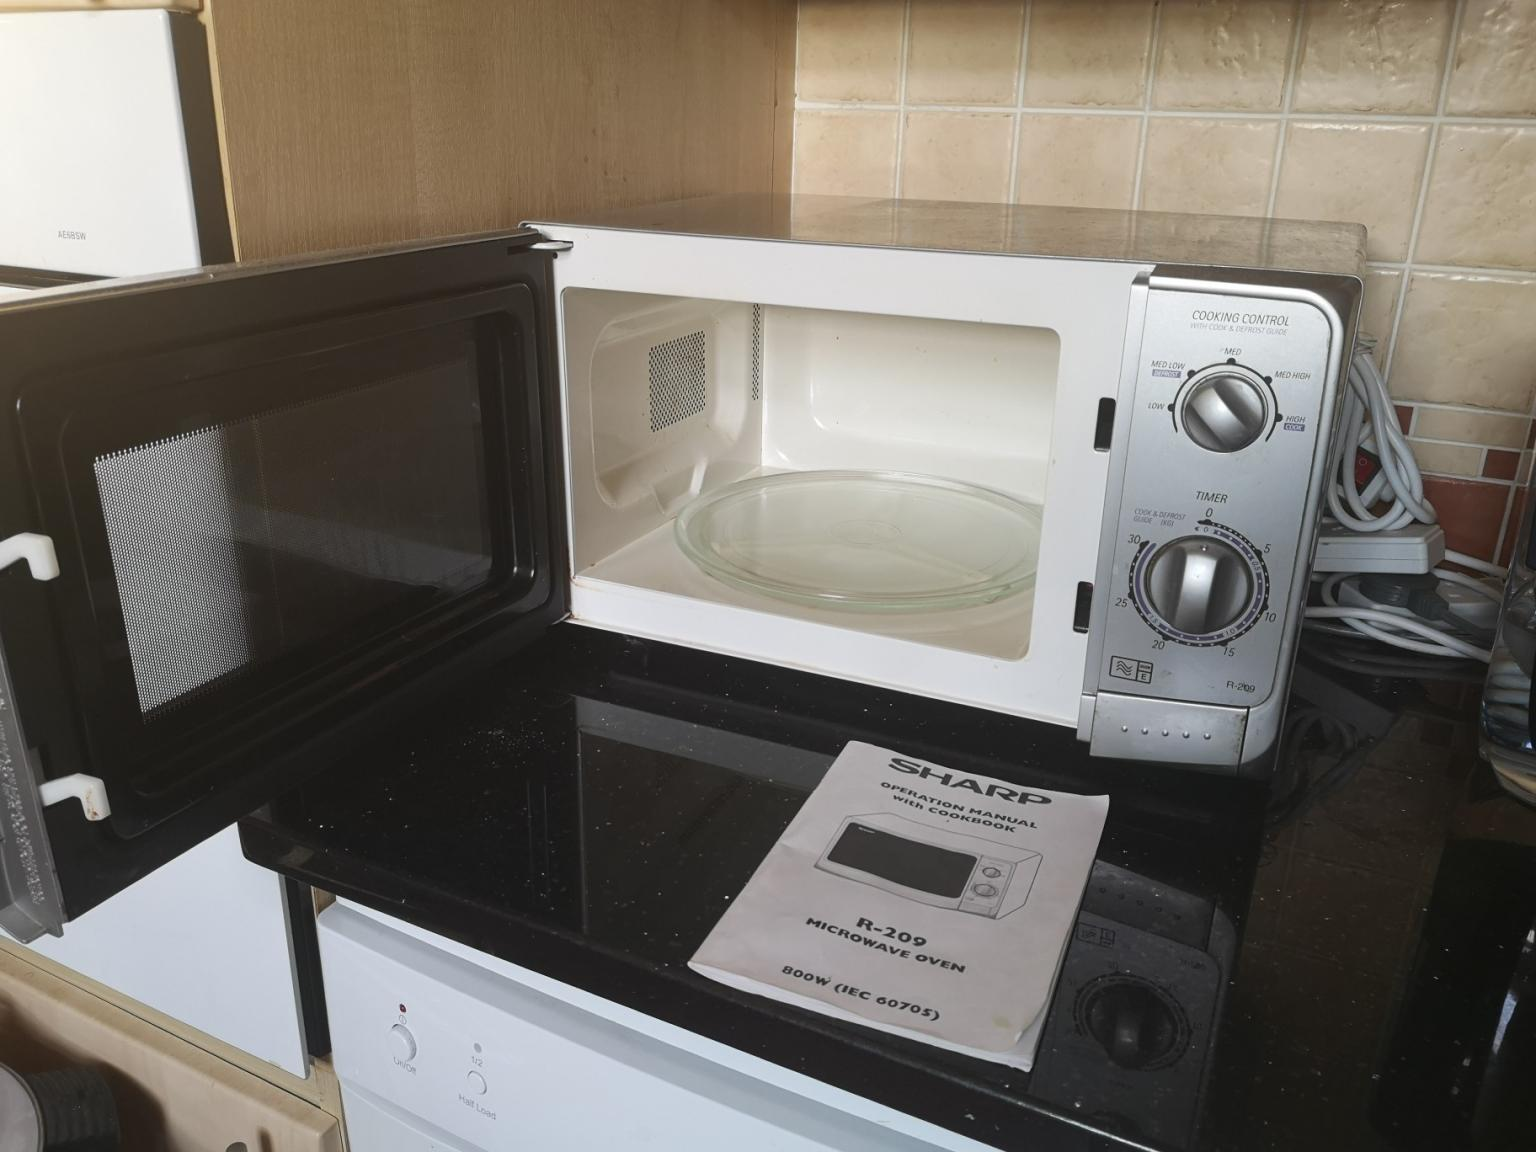 Microwave oven in SW19 London Borough